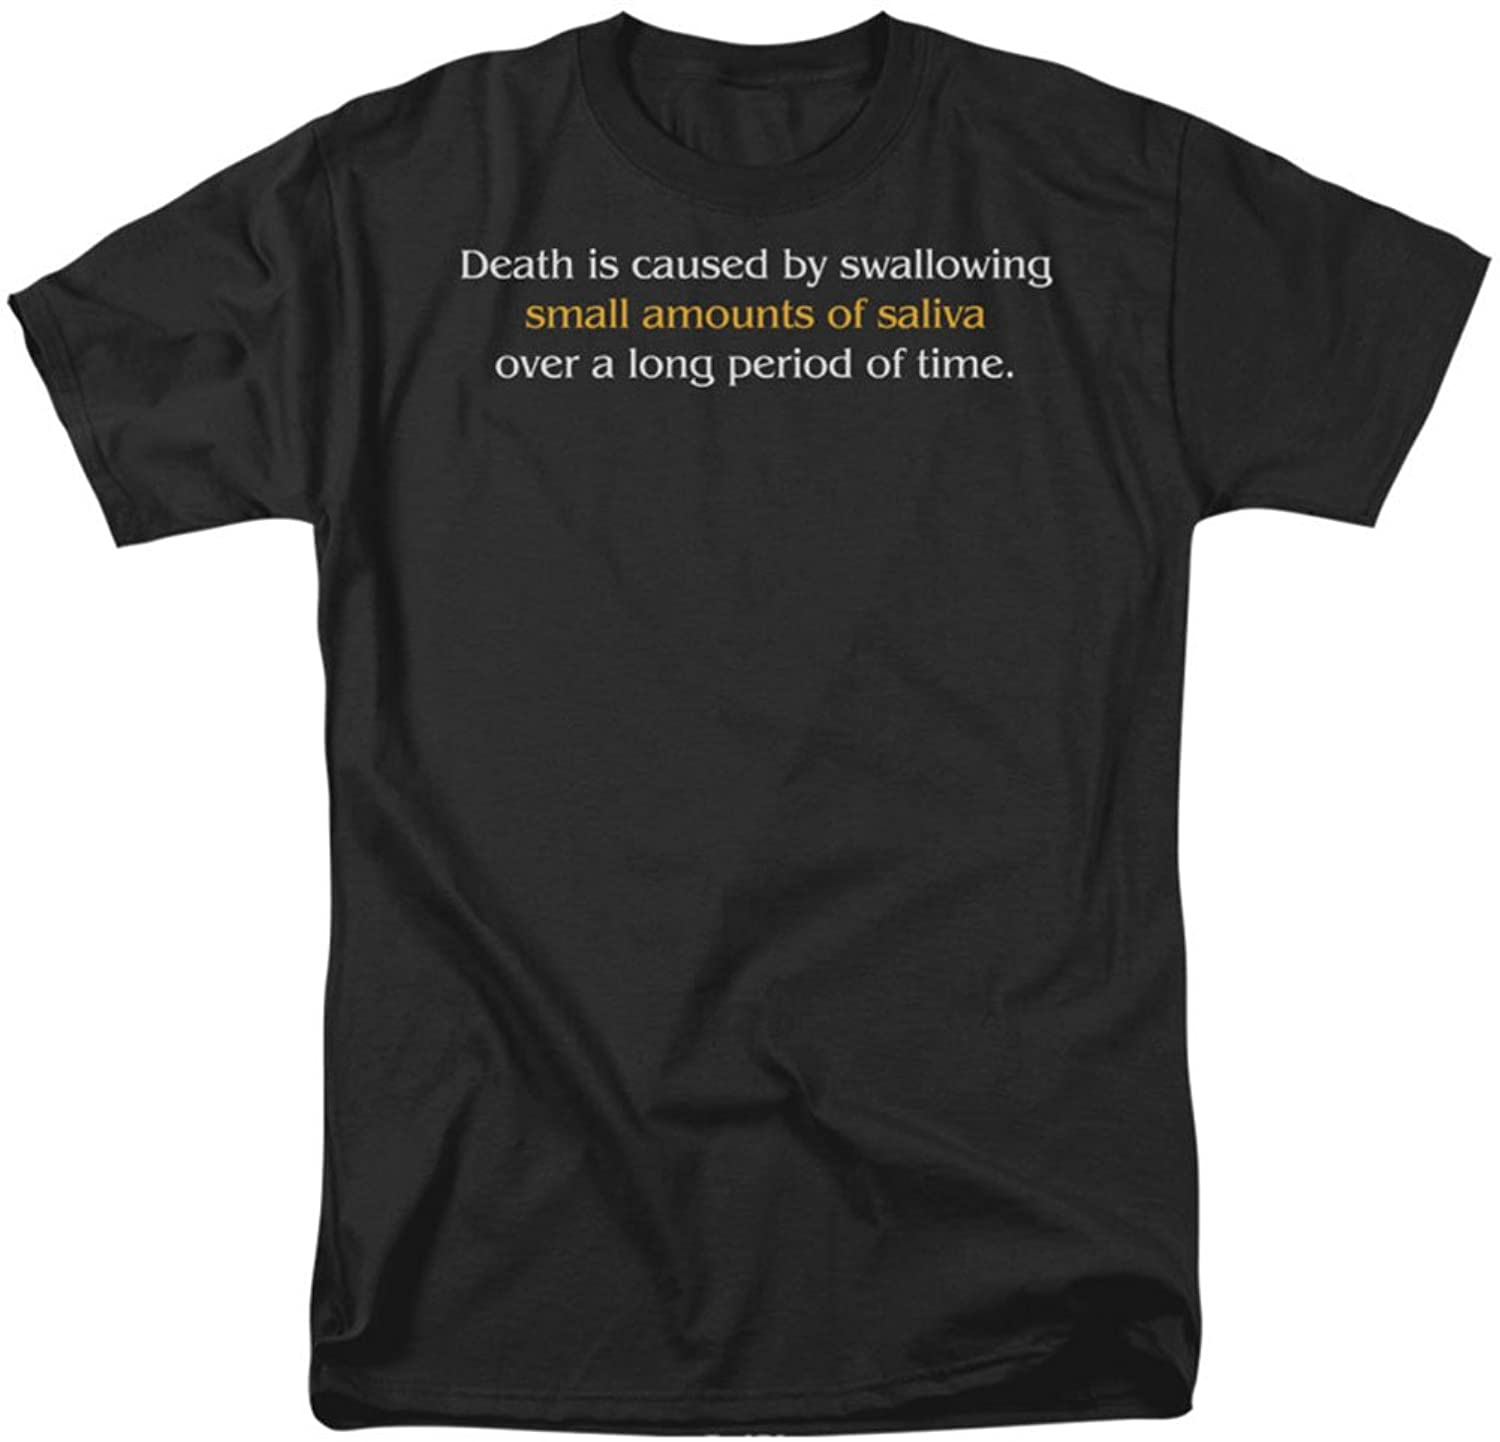 Funny Tees - Mens Death Caused By Saliva T-Shirt